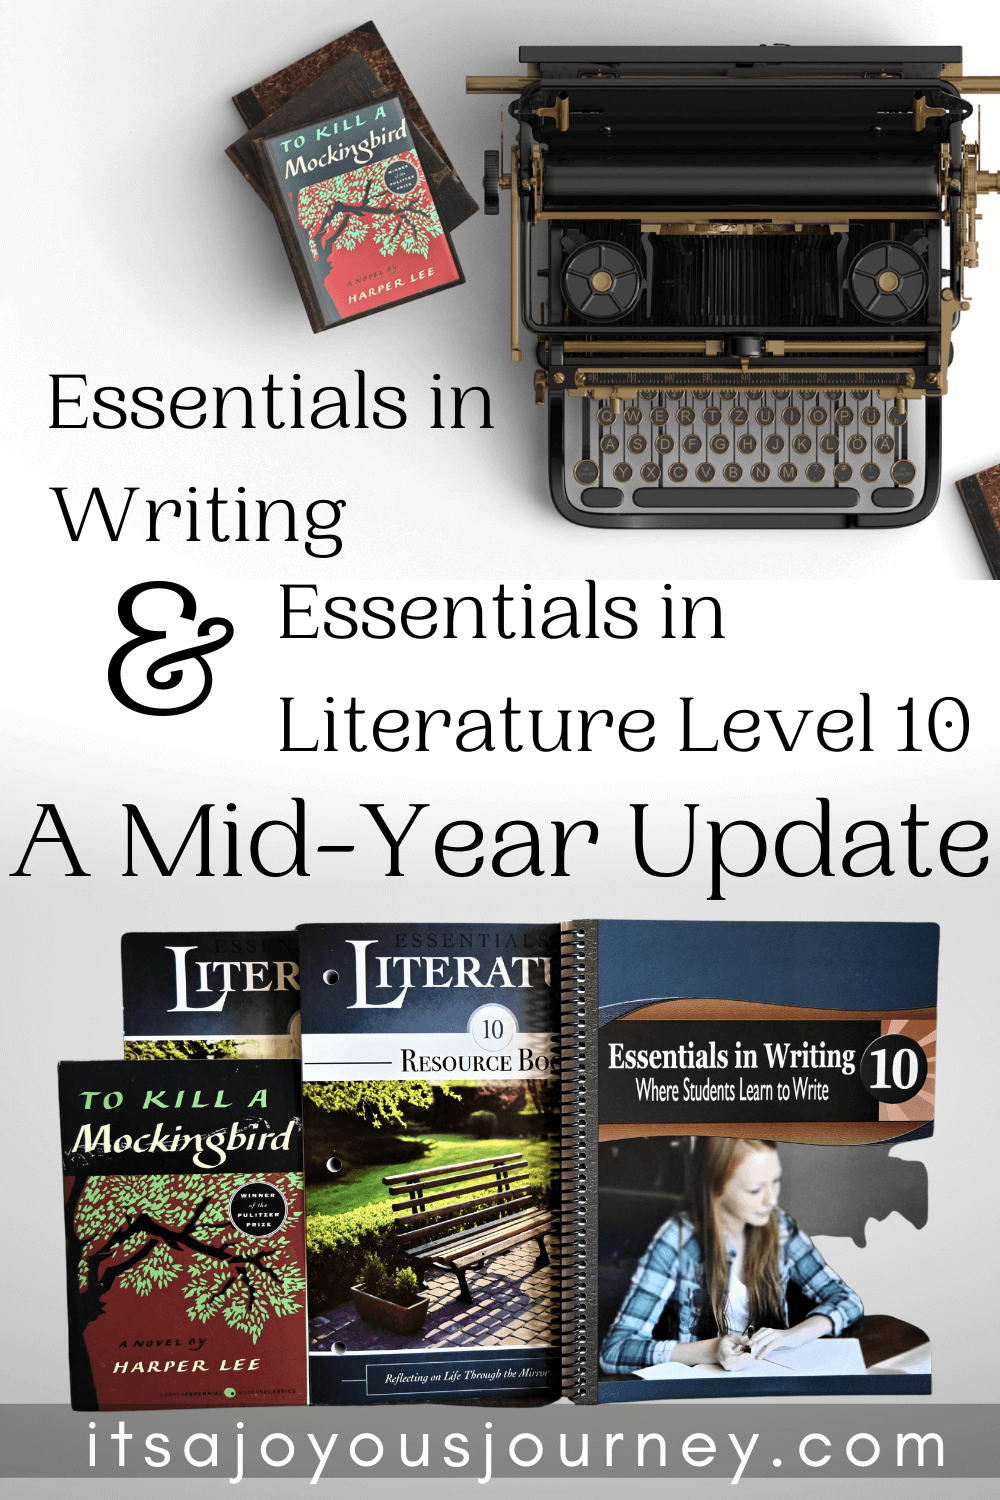 Essentials-in-Writing